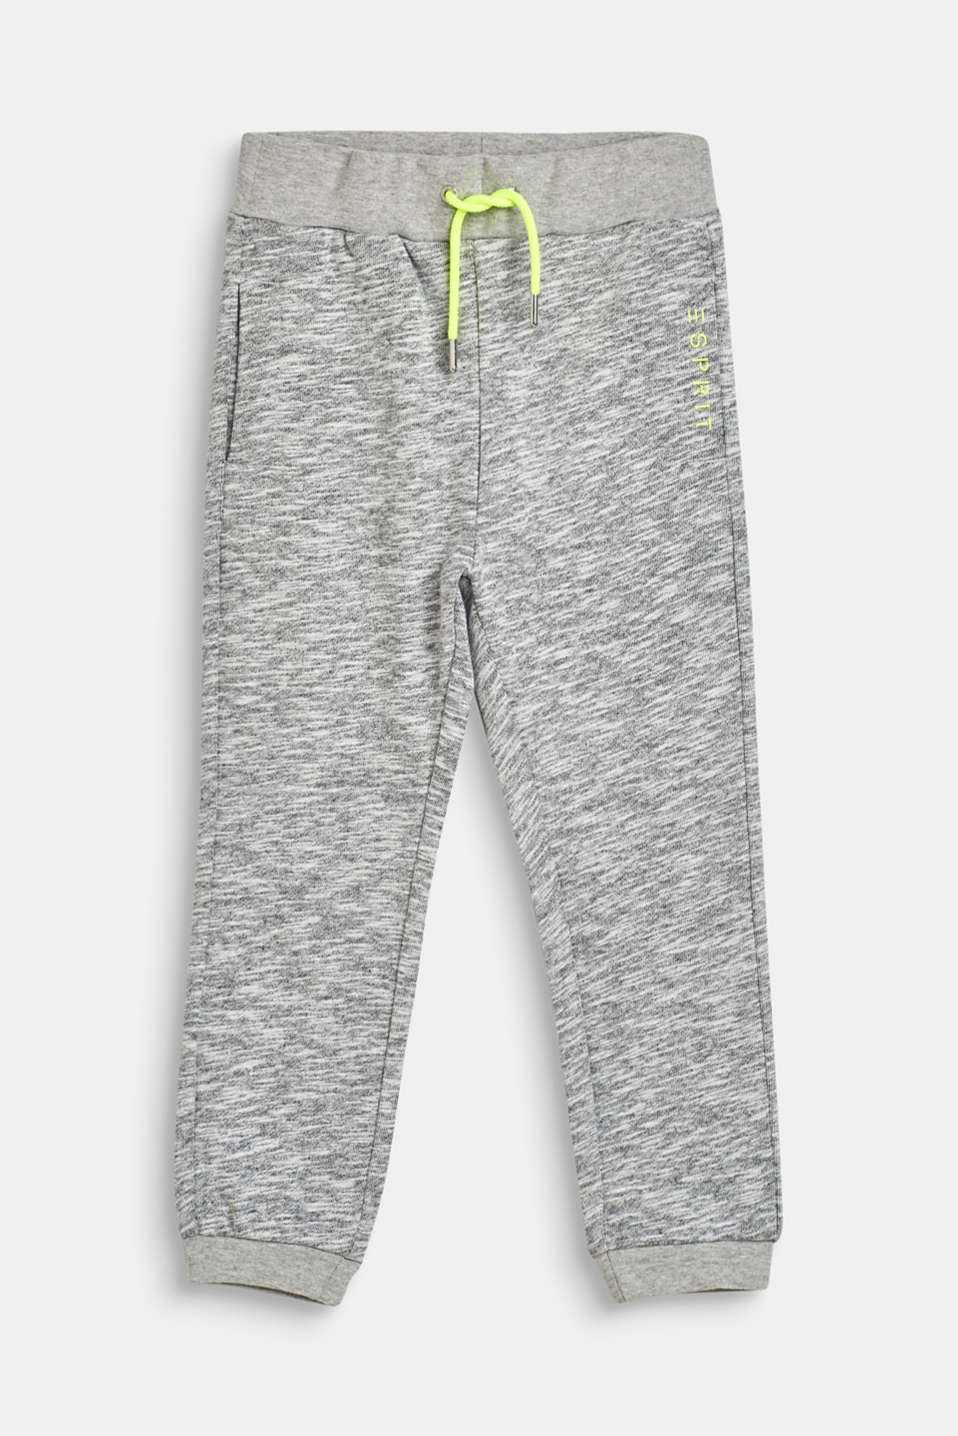 Esprit - Melange tracksuit bottoms with neon details, 100% cotton